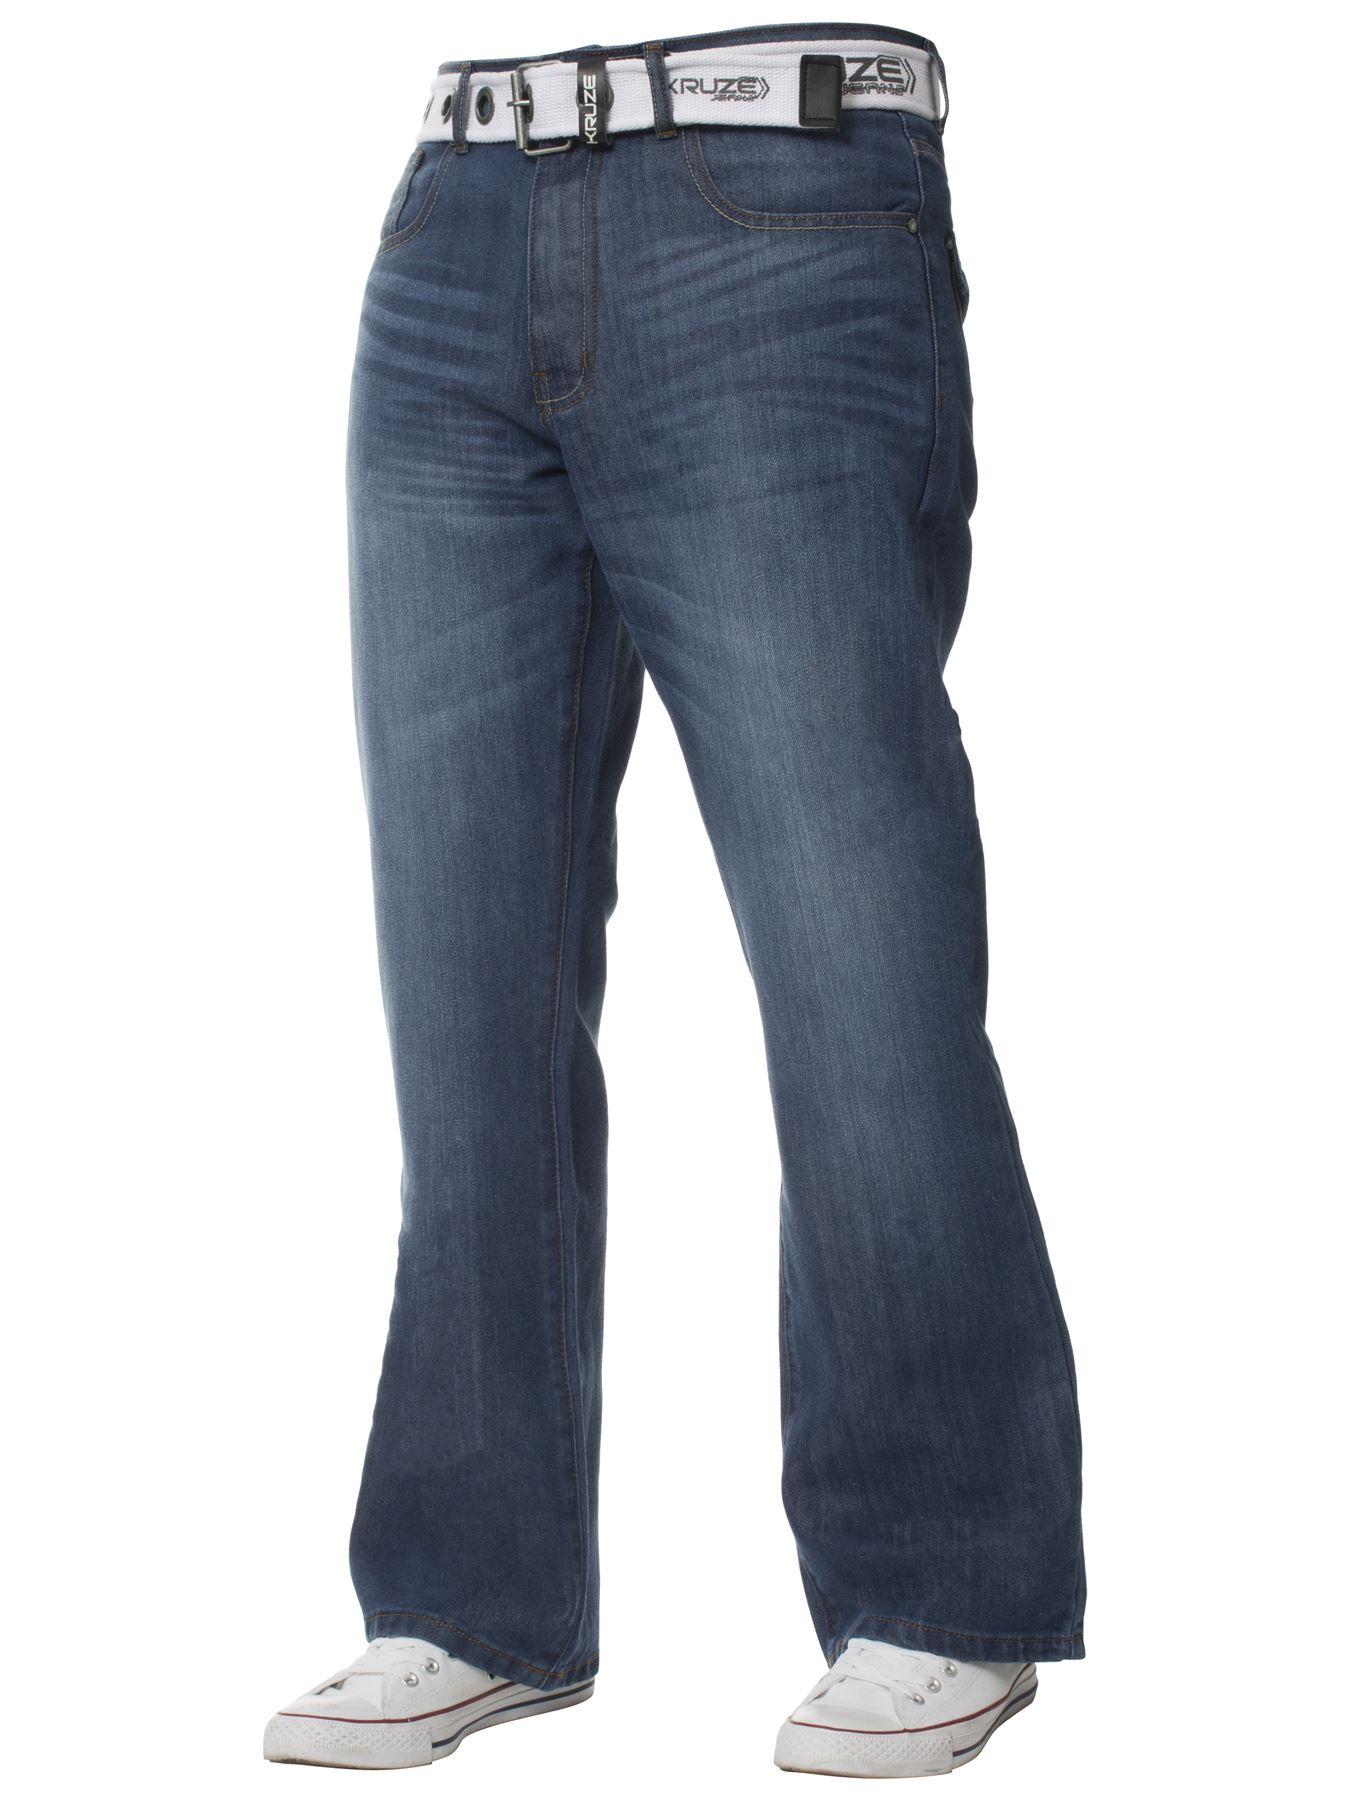 Kruze-Denim-New-Mens-Bootcut-Jeans-Wide-Leg-Flare-Pants-King-Big-All-Waist-Sizes thumbnail 21